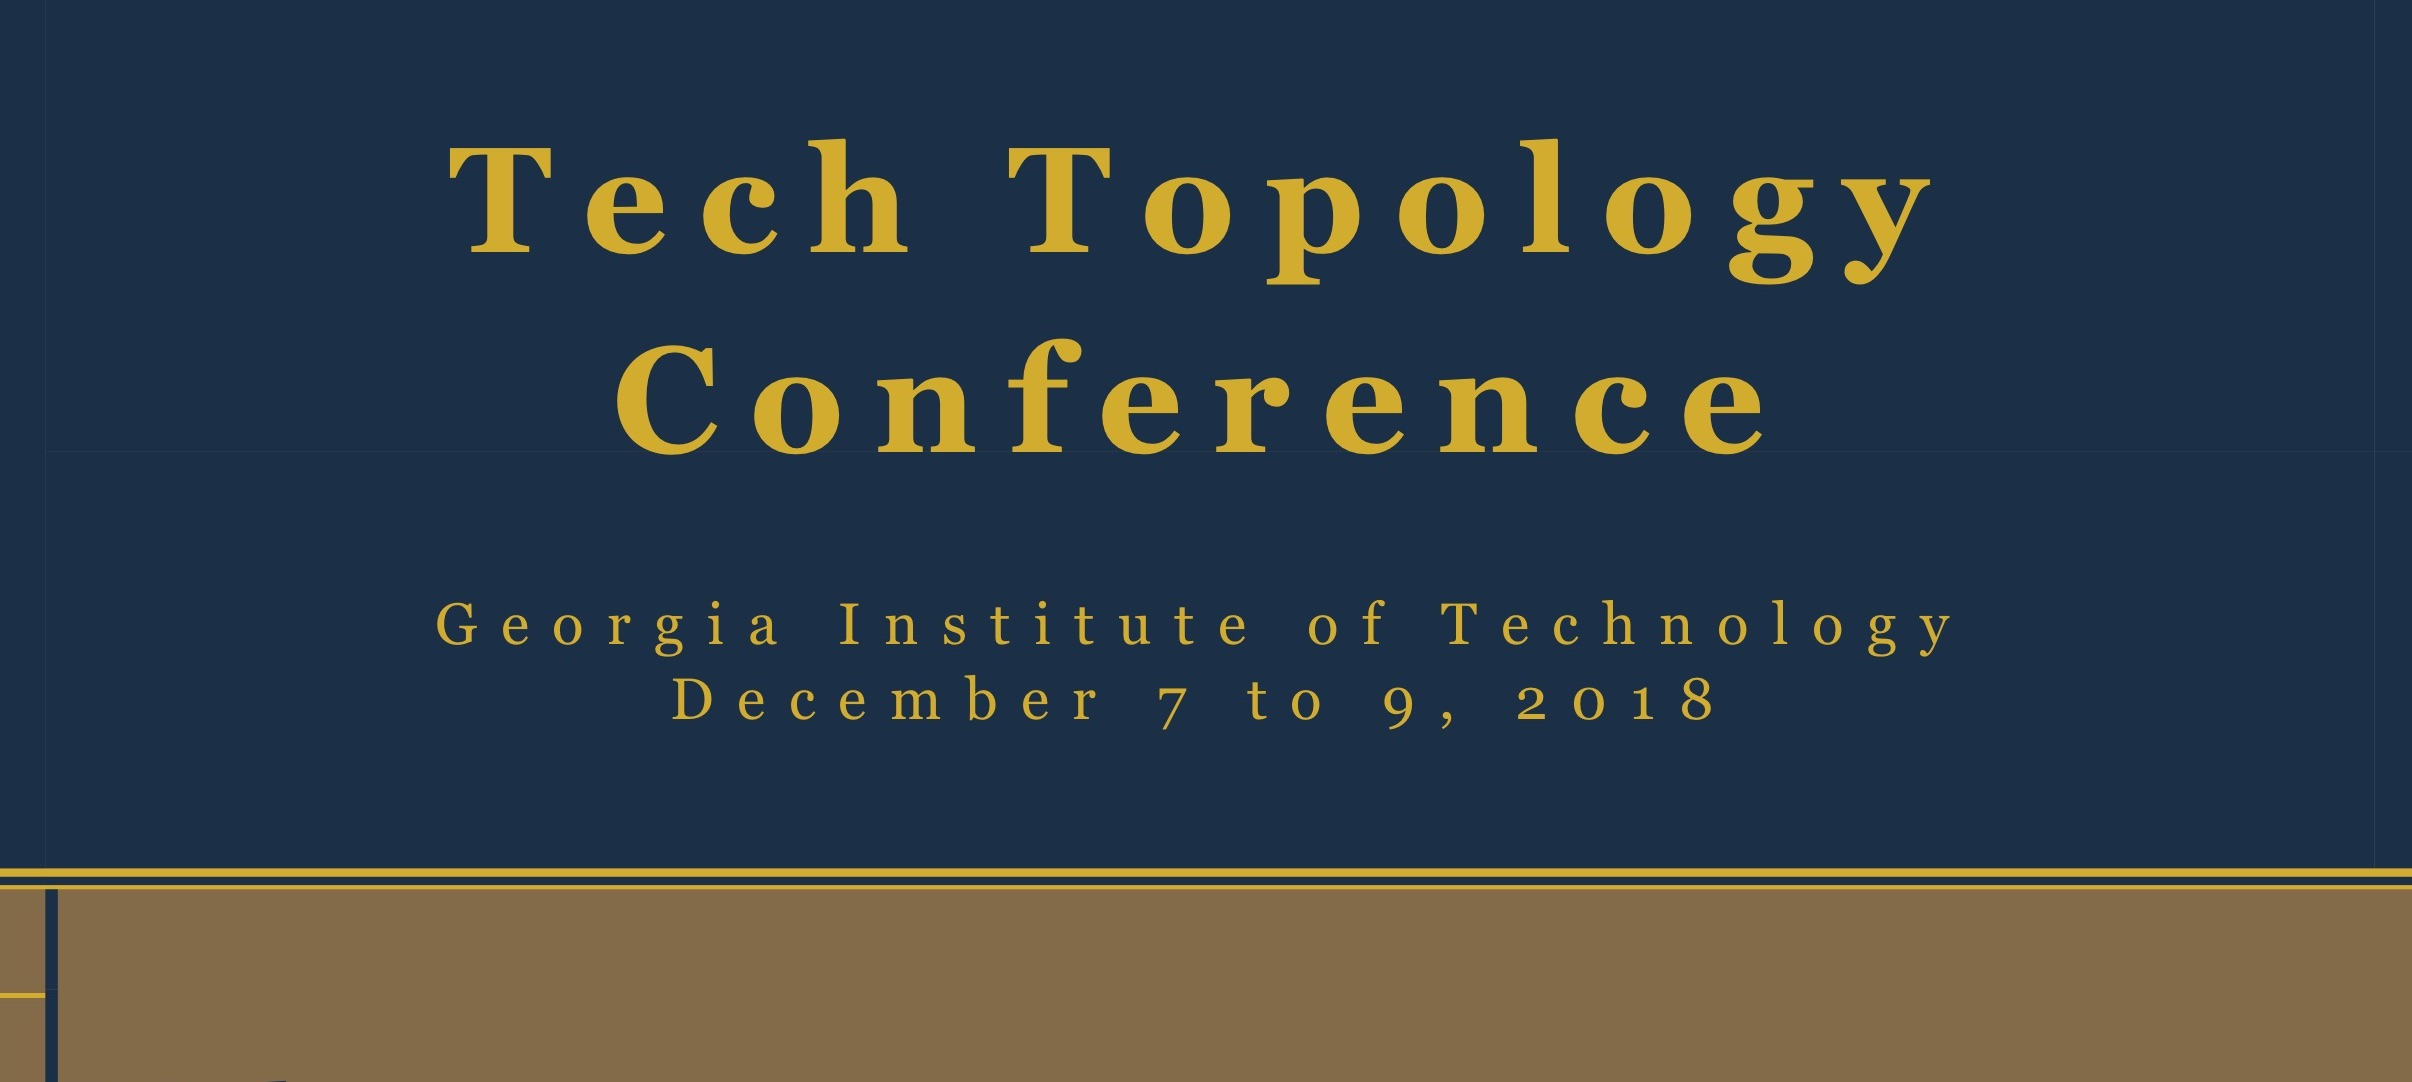 Tech Topology Conference - cover